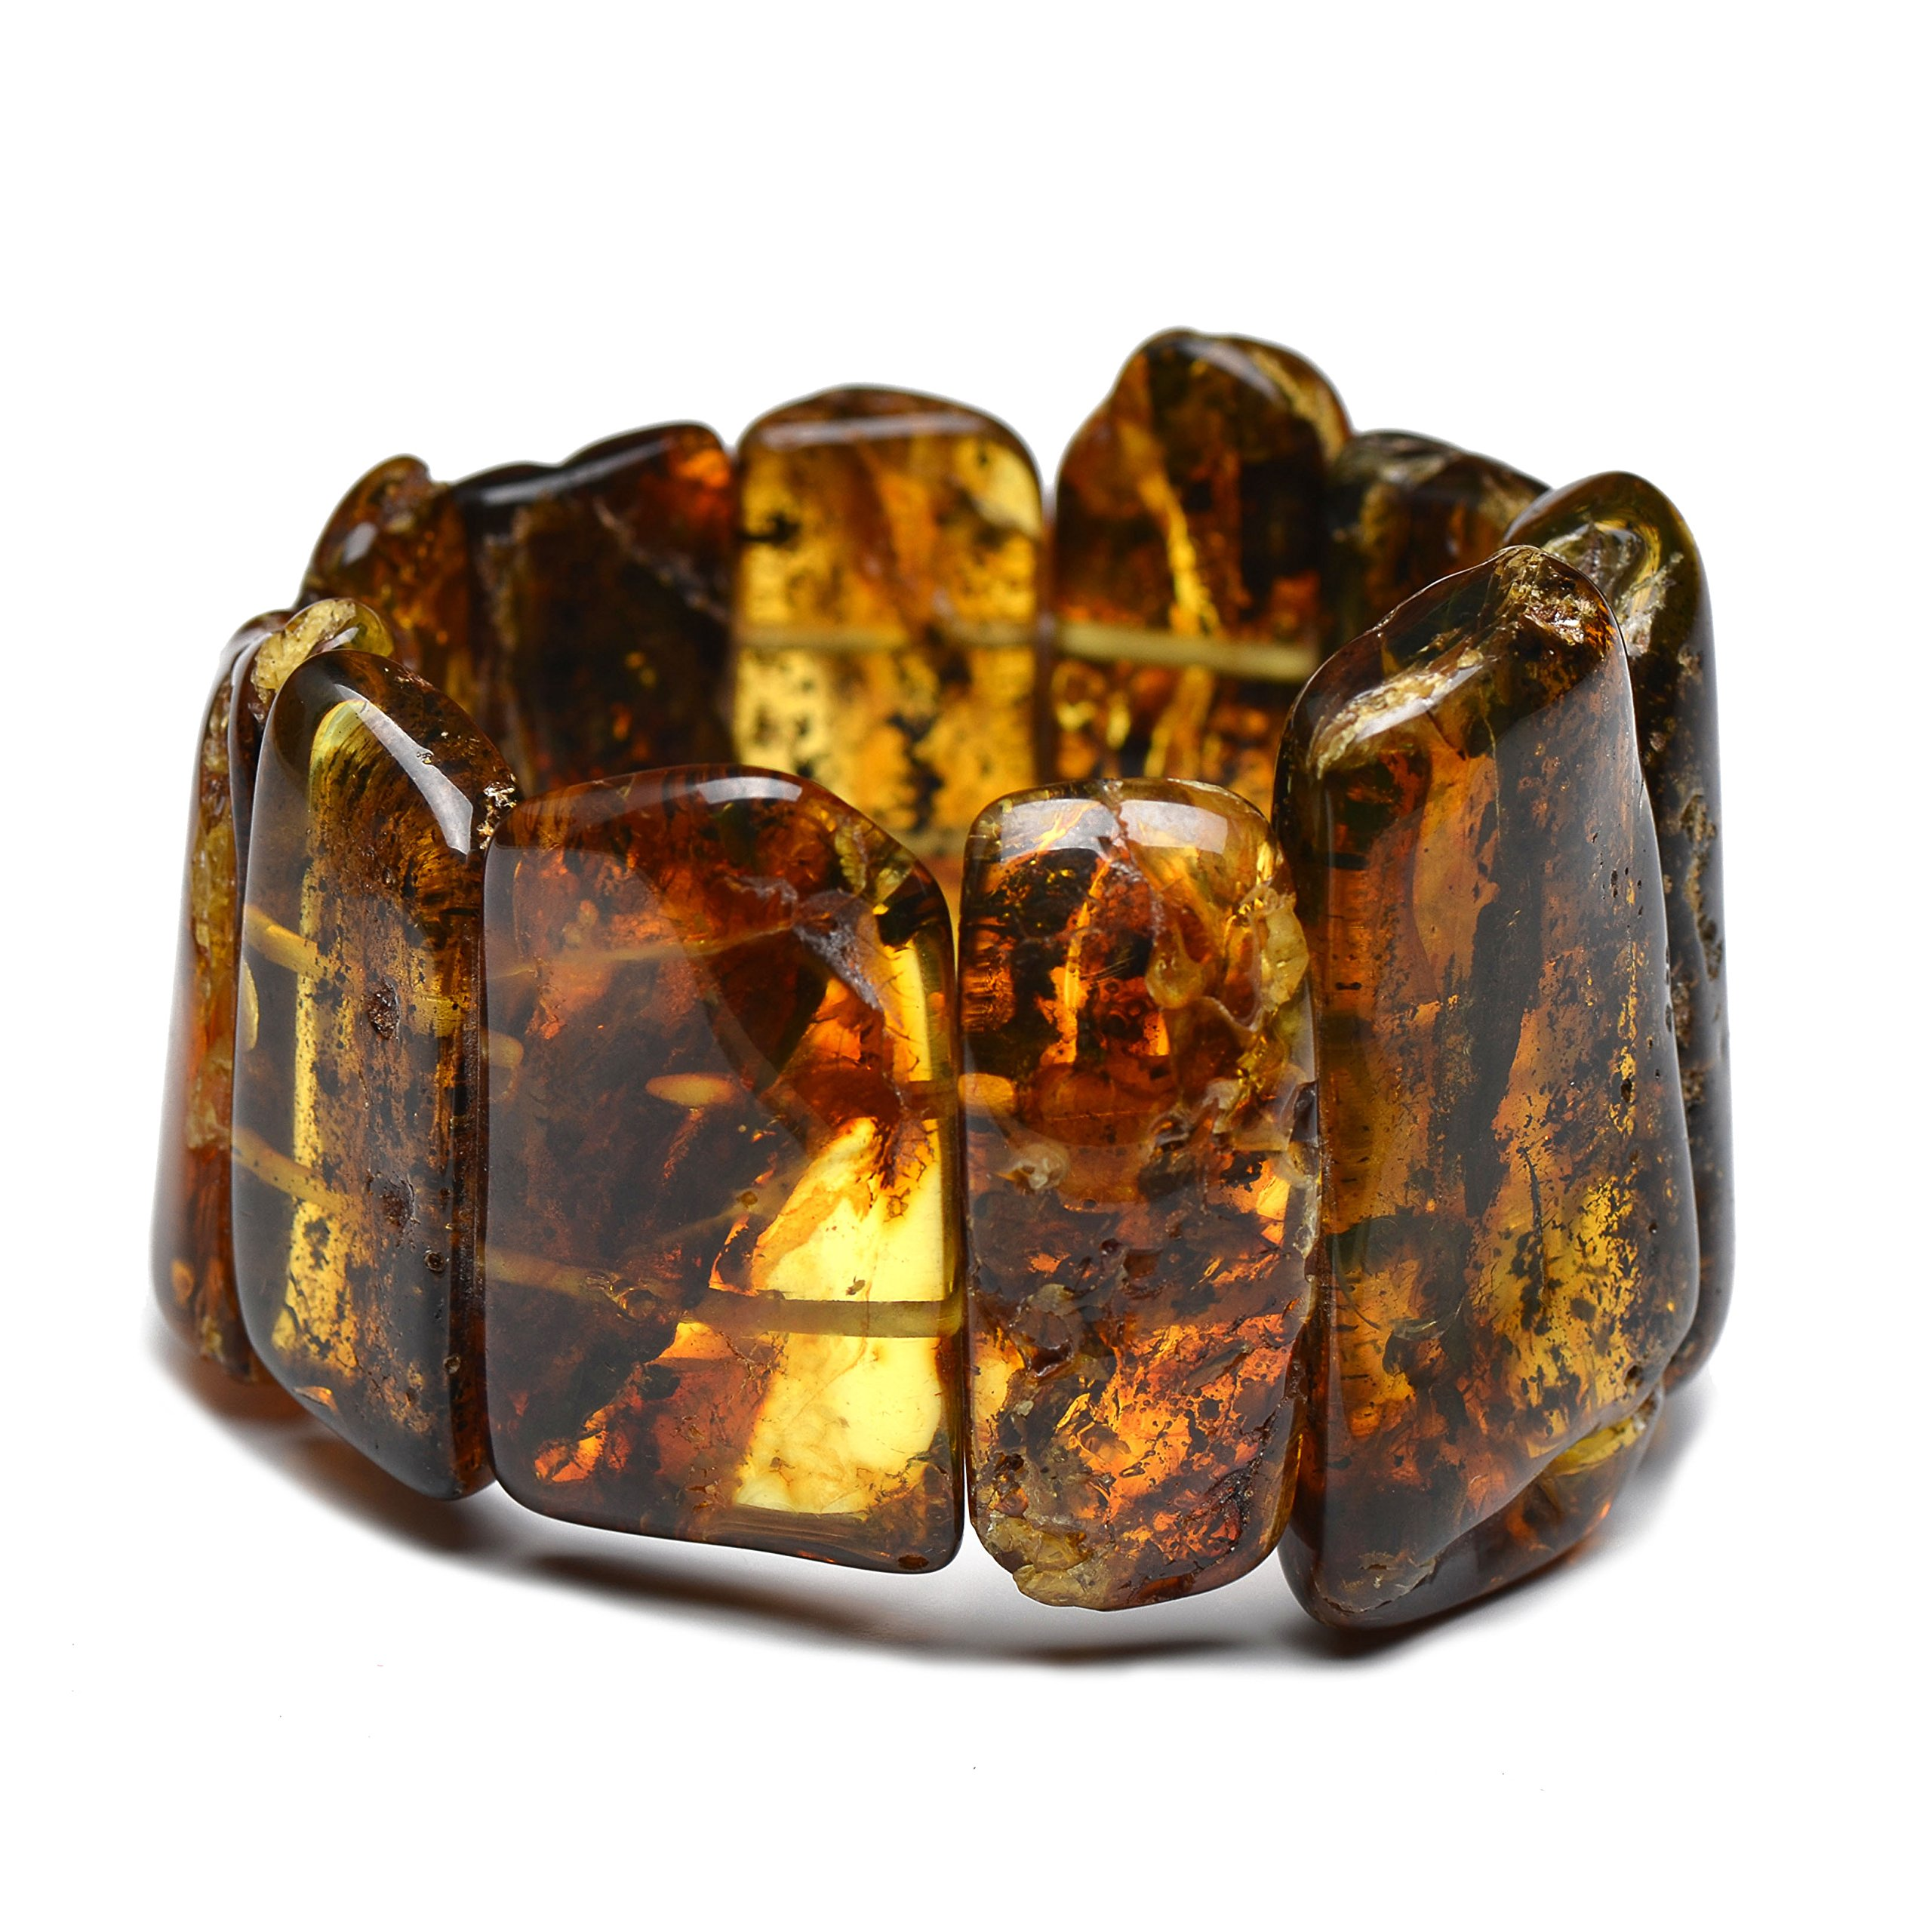 Massive Vintage Amber Bracelet for Woman (81g.) - Exclusive and Unique Amber Pieces - Amber Bracelet - Comes with Certificate